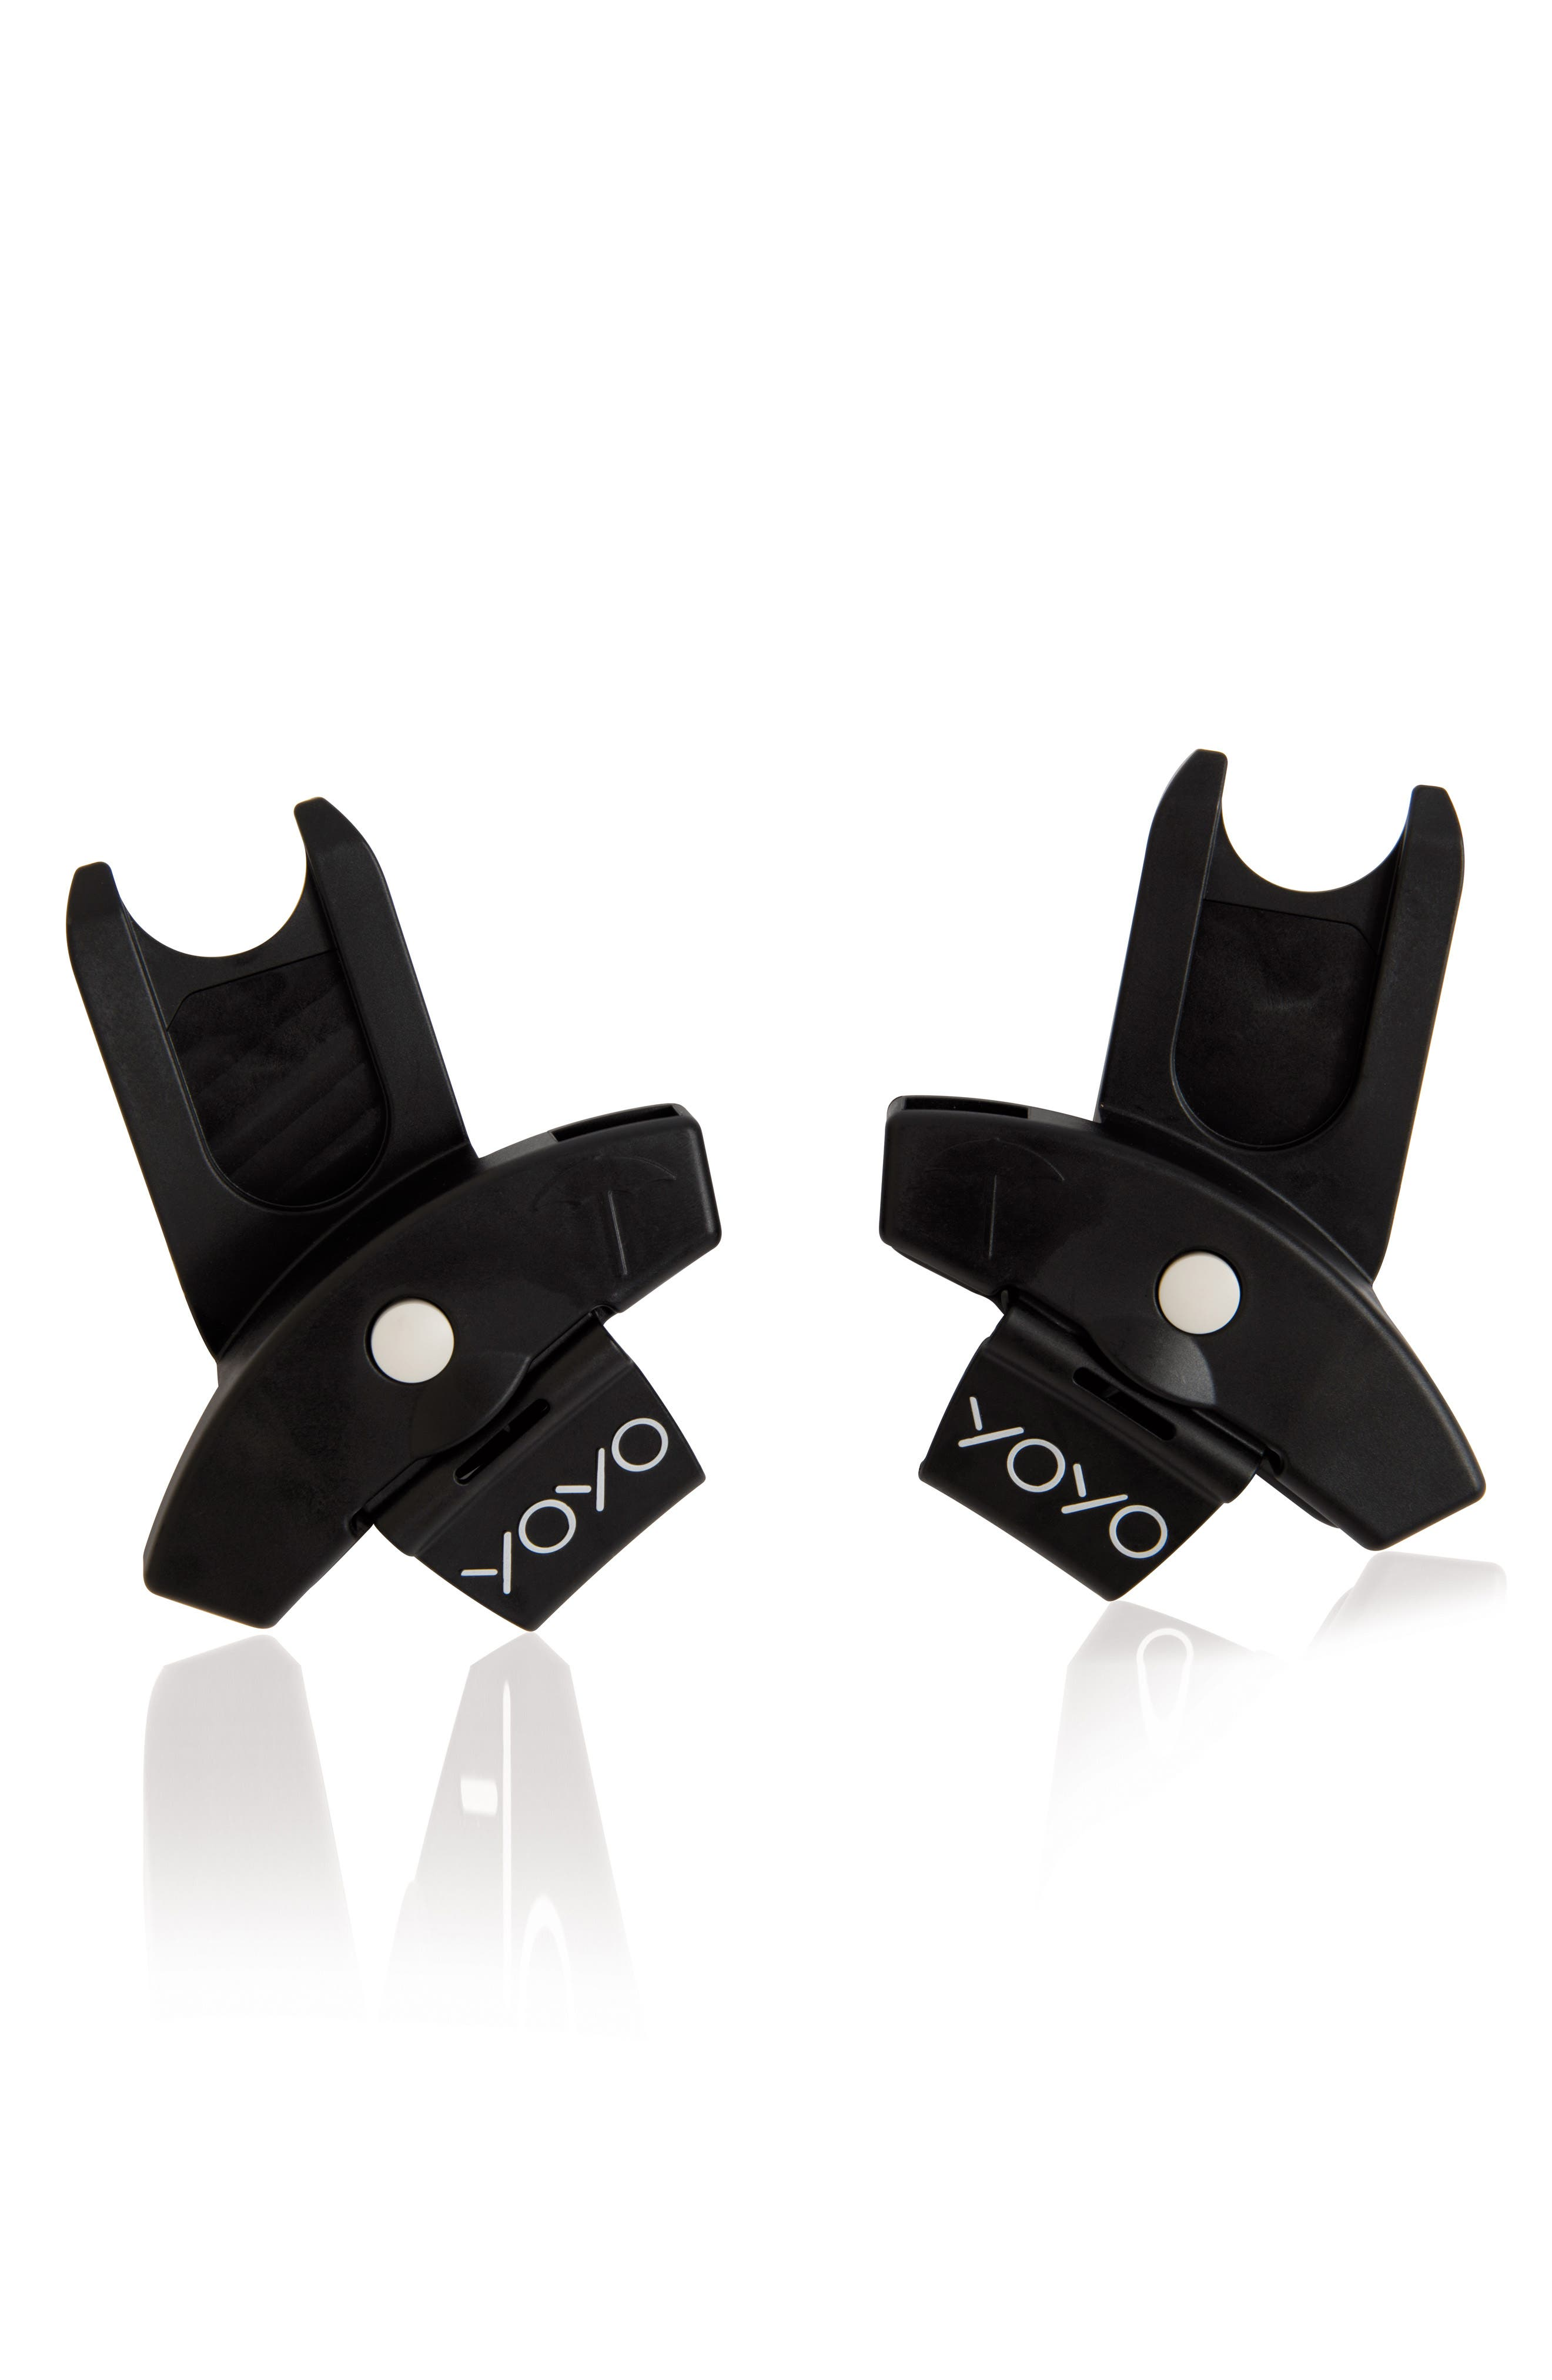 Babyzen Adapters for YOYO+ Stroller & Cybex, Nuna and Maxi-Cosi<sup>®</sup> Infant Car Seats,                         Main,                         color, Black